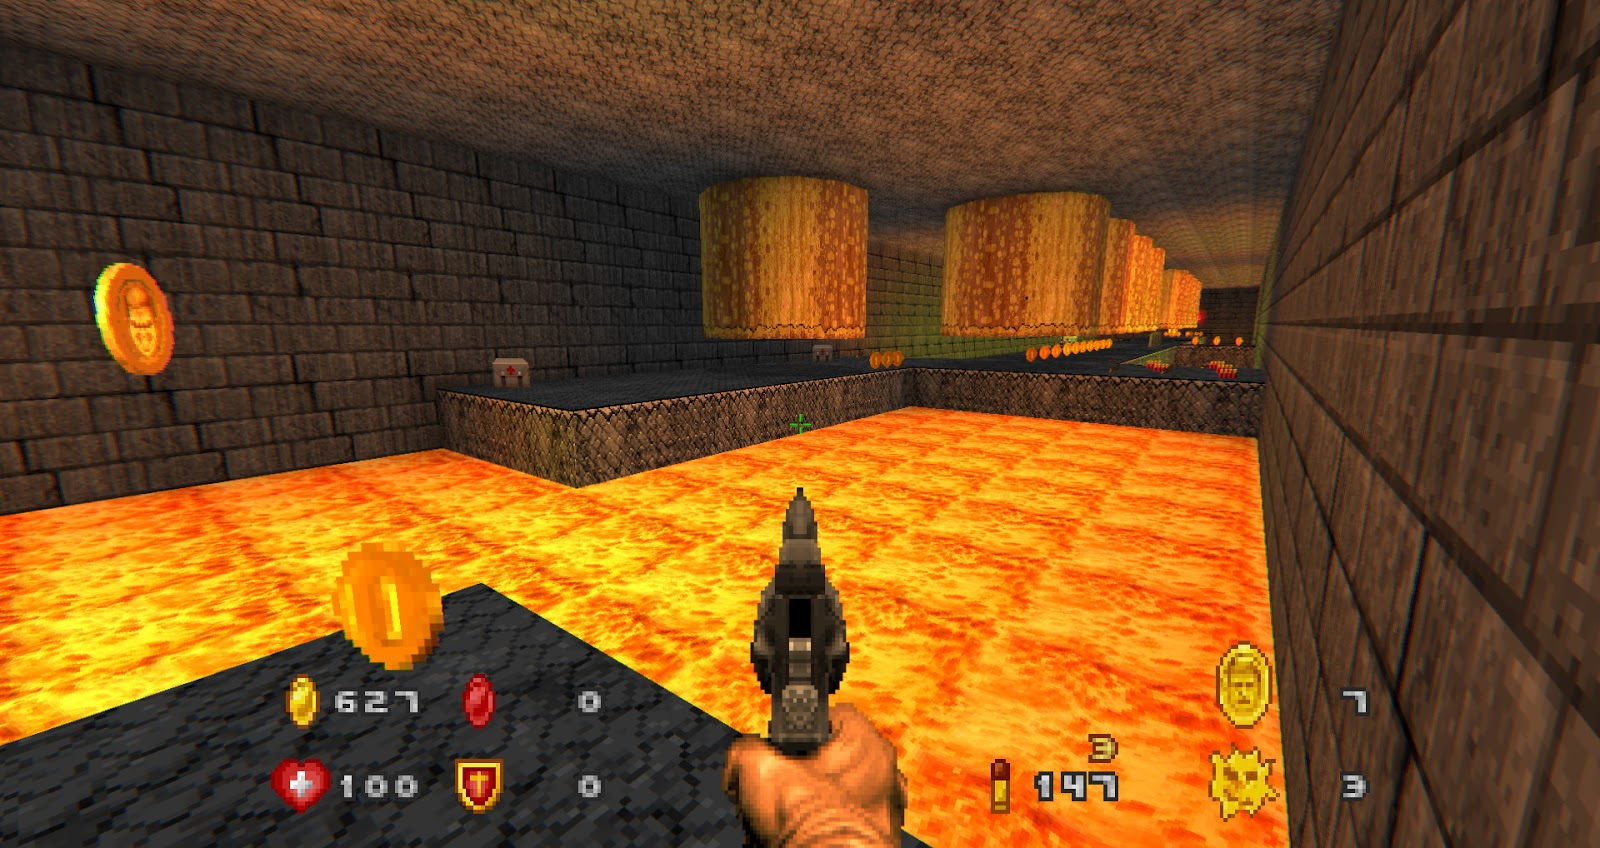 Review - DOOM + THE GOLDEN SOULS v1 4 - Plumber with a